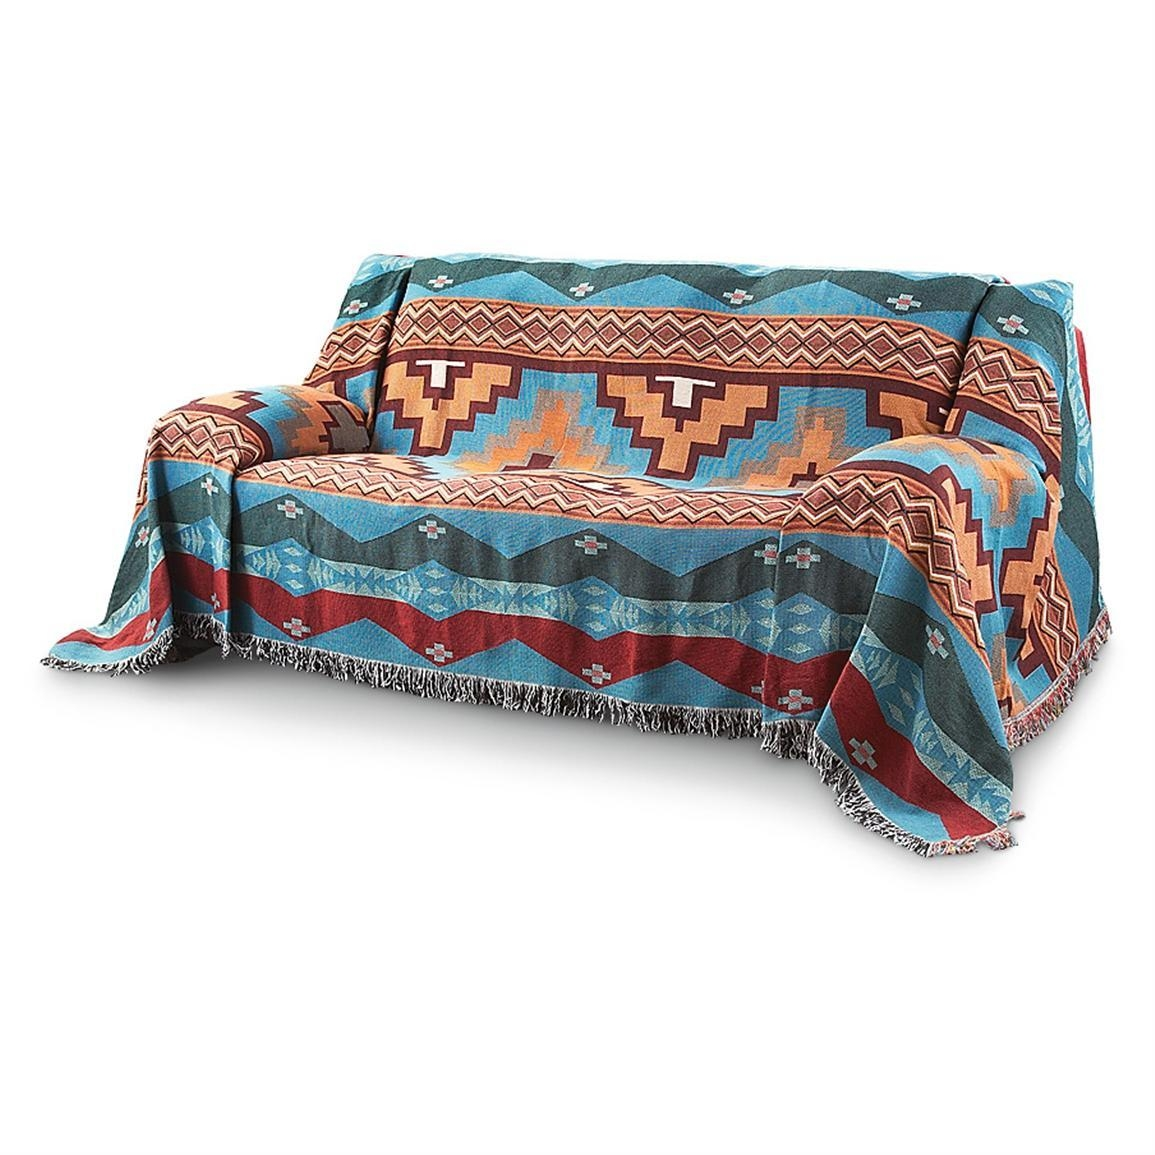 River Canyon Furniture Throw – 166656, Furniture Covers At In Turquoise Sofa Covers (View 5 of 20)